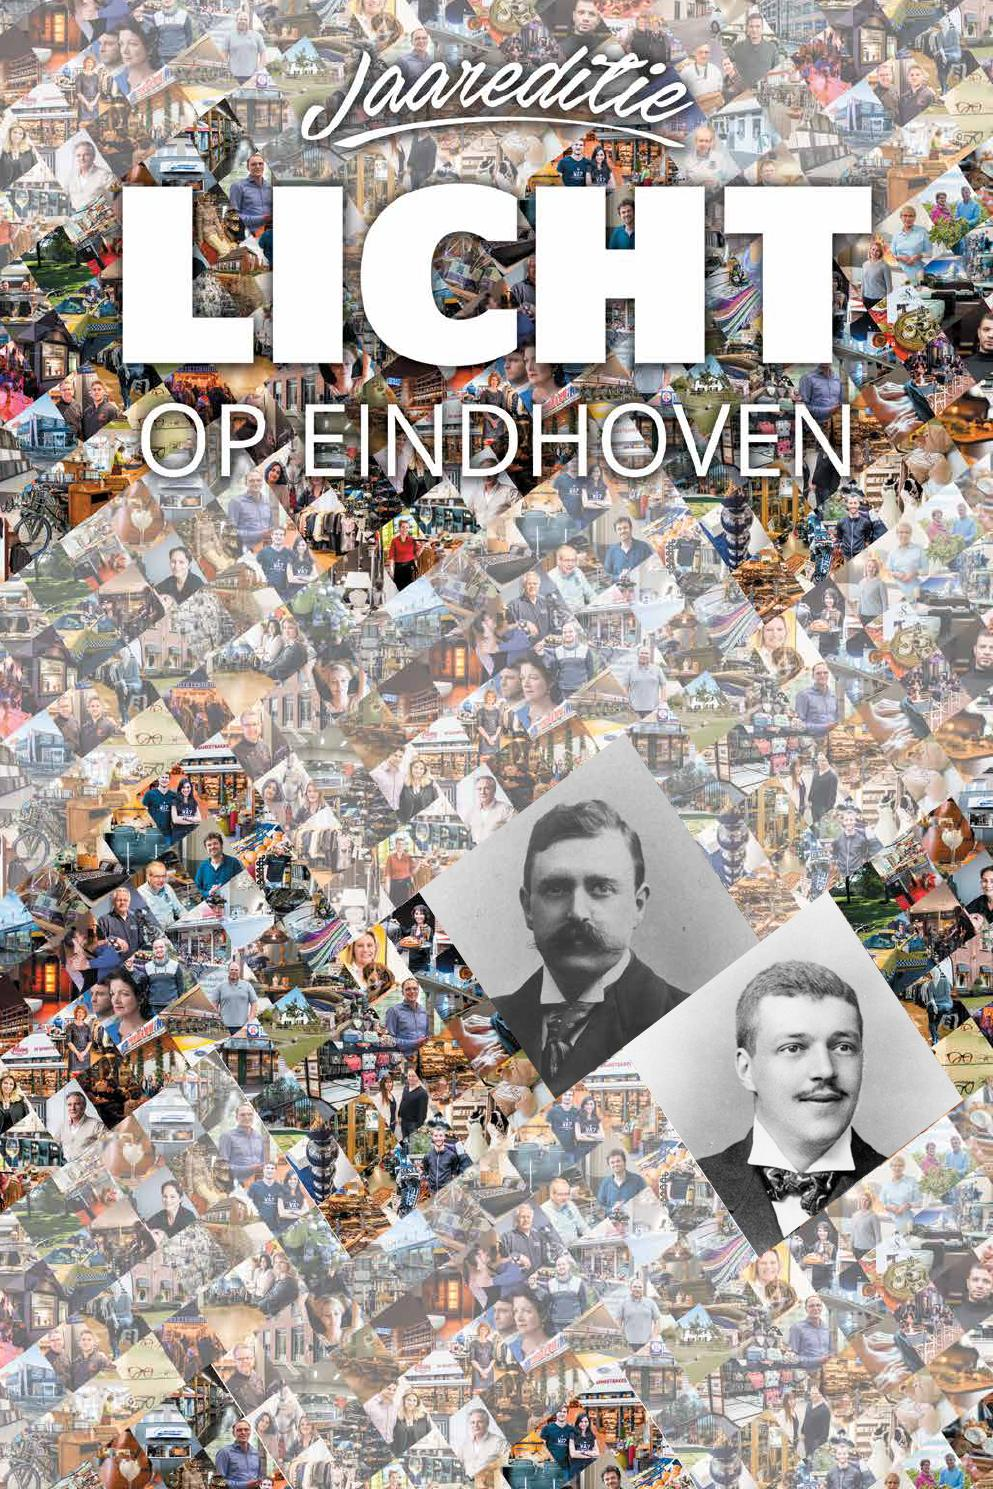 Jaareditie licht op eindhoven 2016 by arrogant media   issuu